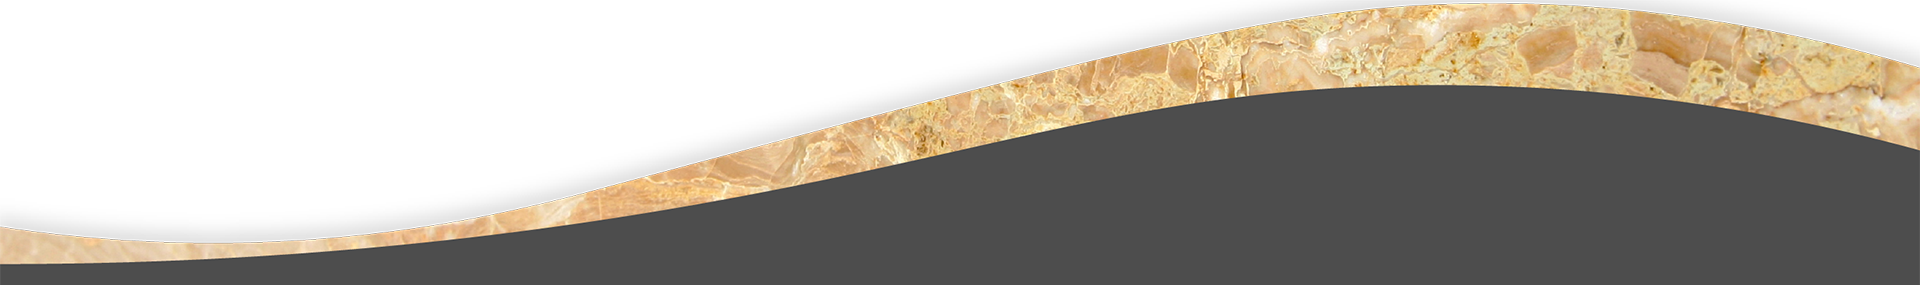 Granite Image for website footer